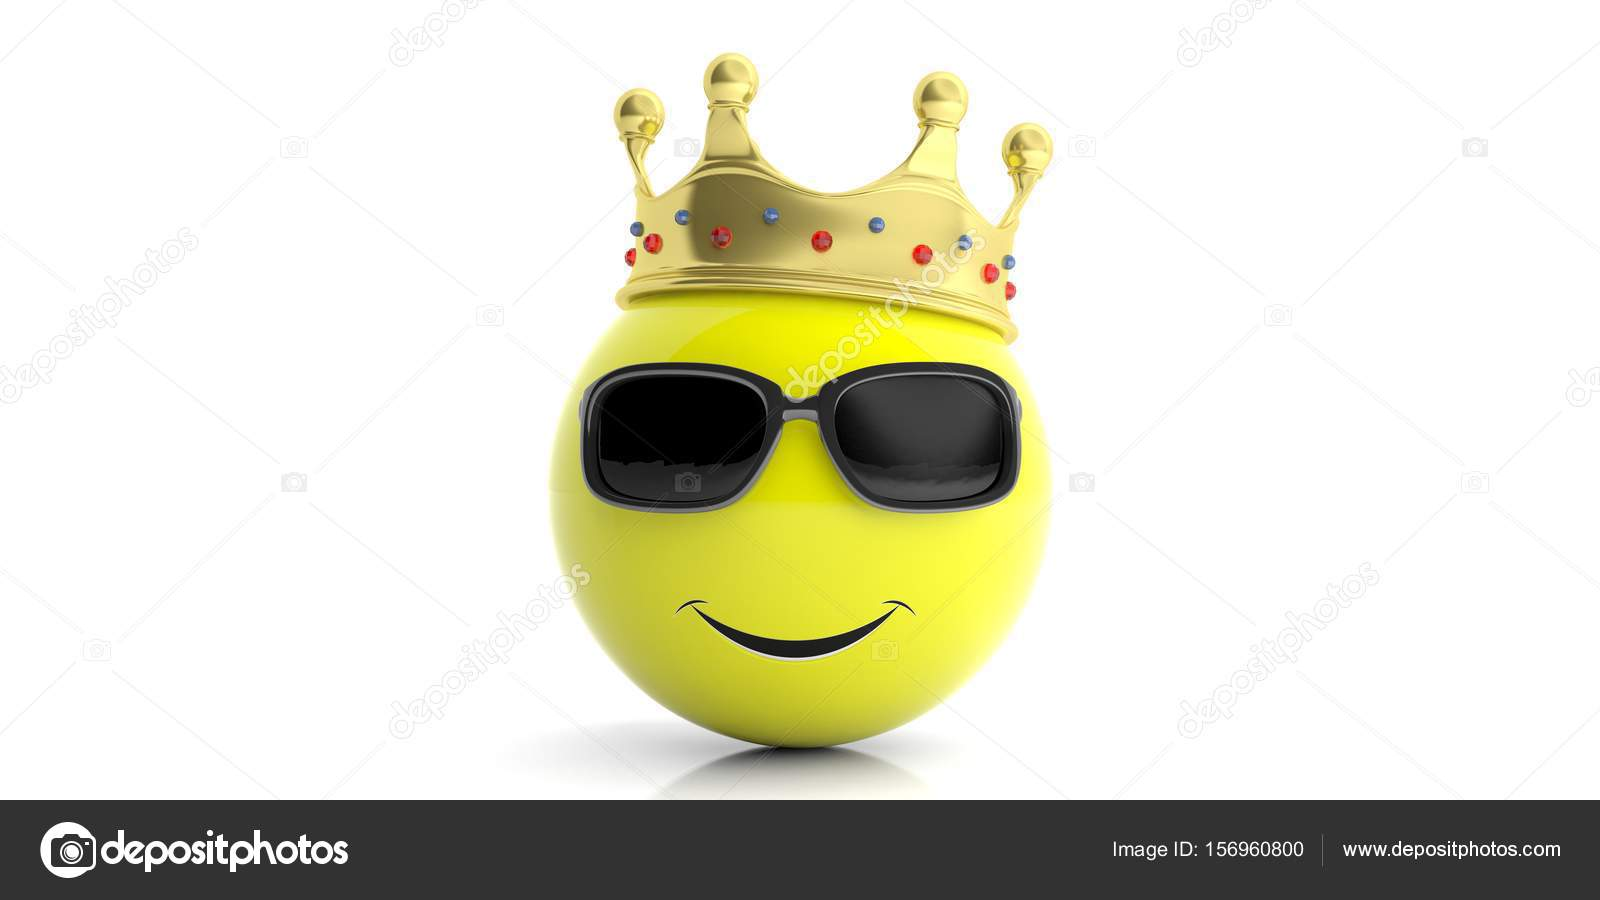 Golden crown on a yellow emoji white background 3d illustration yellow emoticon with golden crown isolated on white background 3d illustration photo by gioiak2 biocorpaavc Gallery